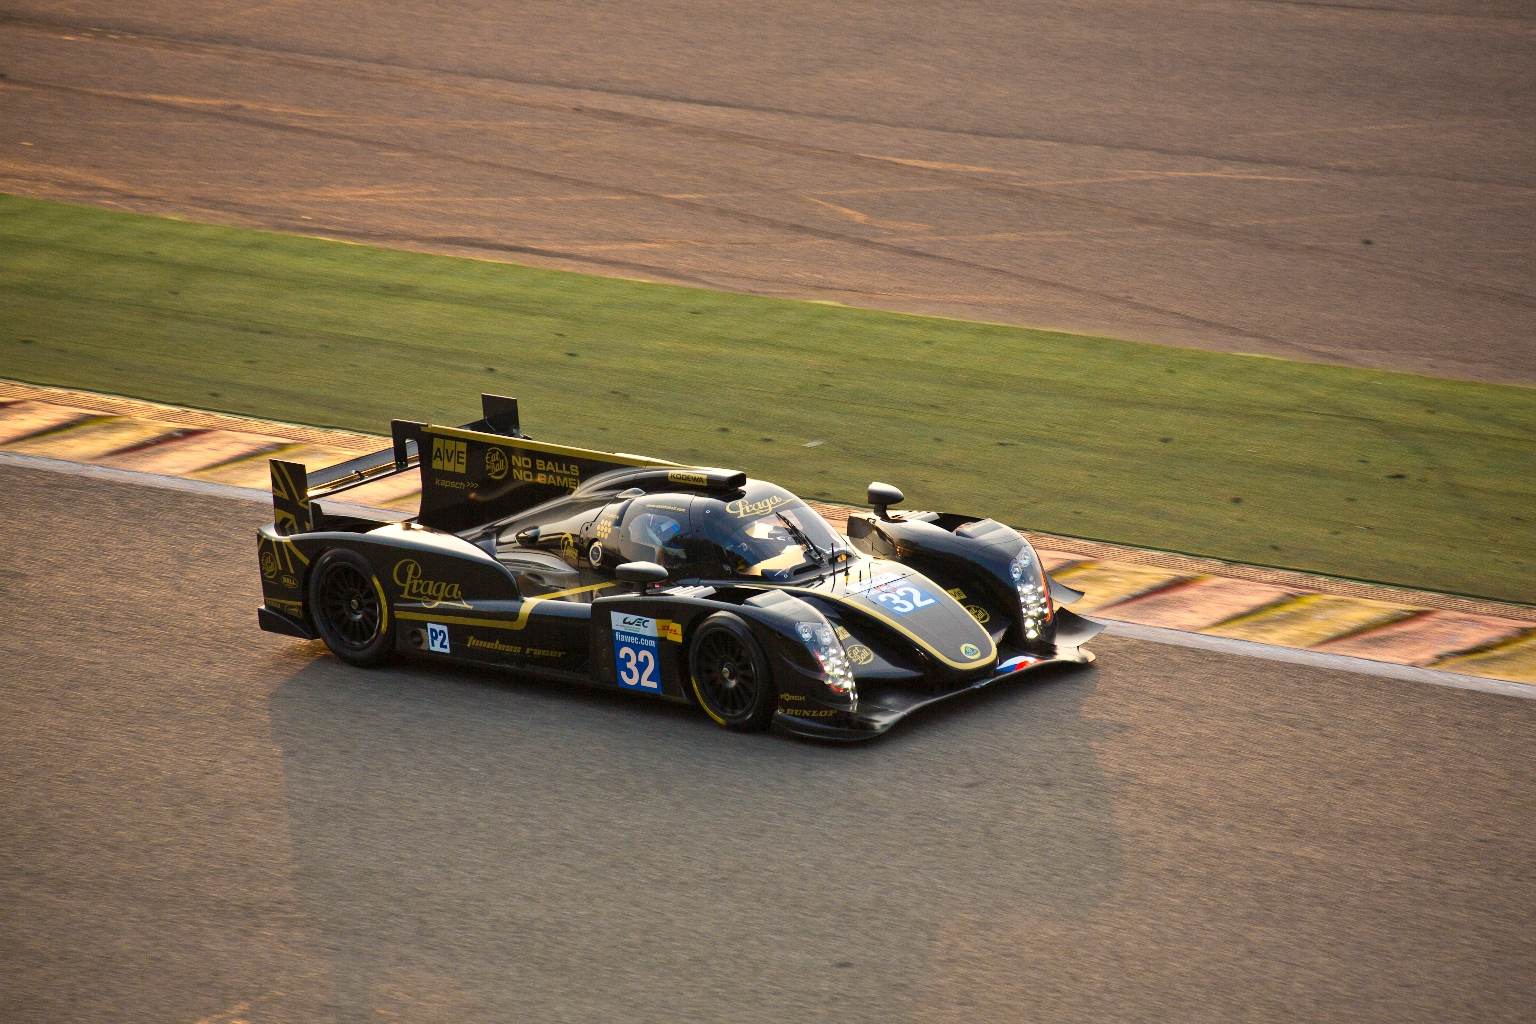 Lotus Praga LMP2 Third Day at the 24 Hours of Le Mans